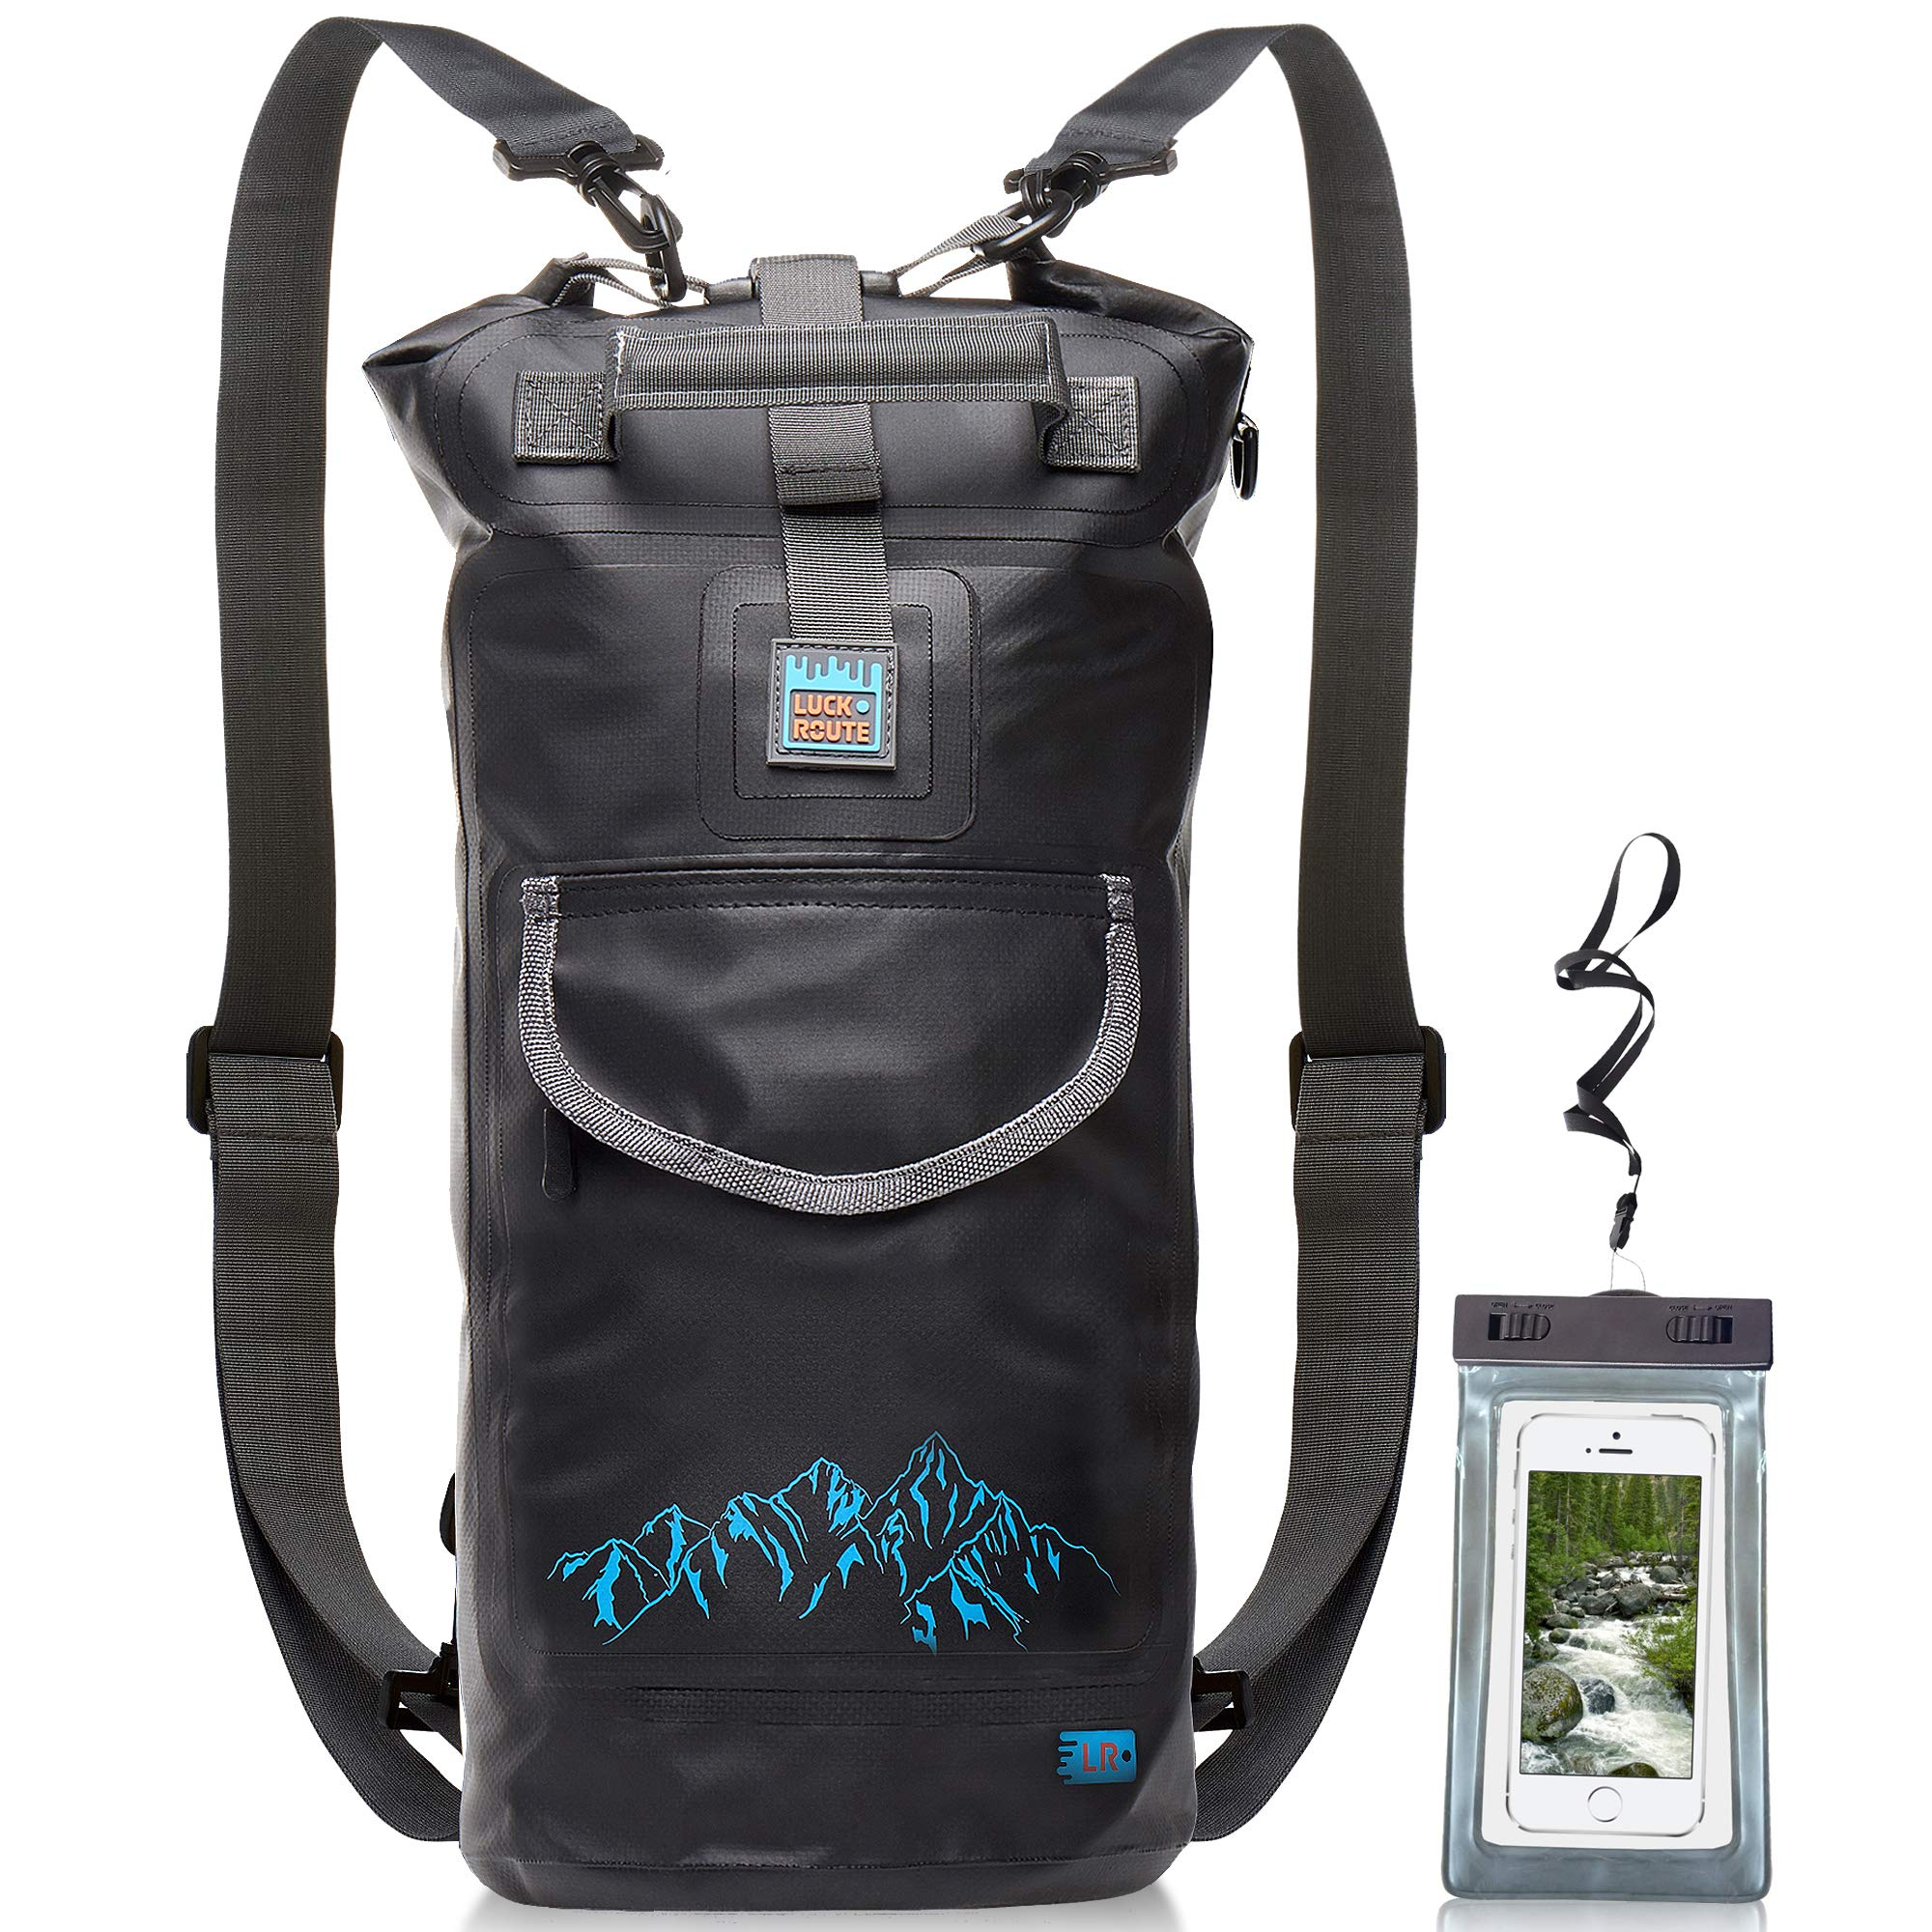 Luck route Waterproof Dry Bag with Backpack Straps and Pockets ... bbf5762e30a76